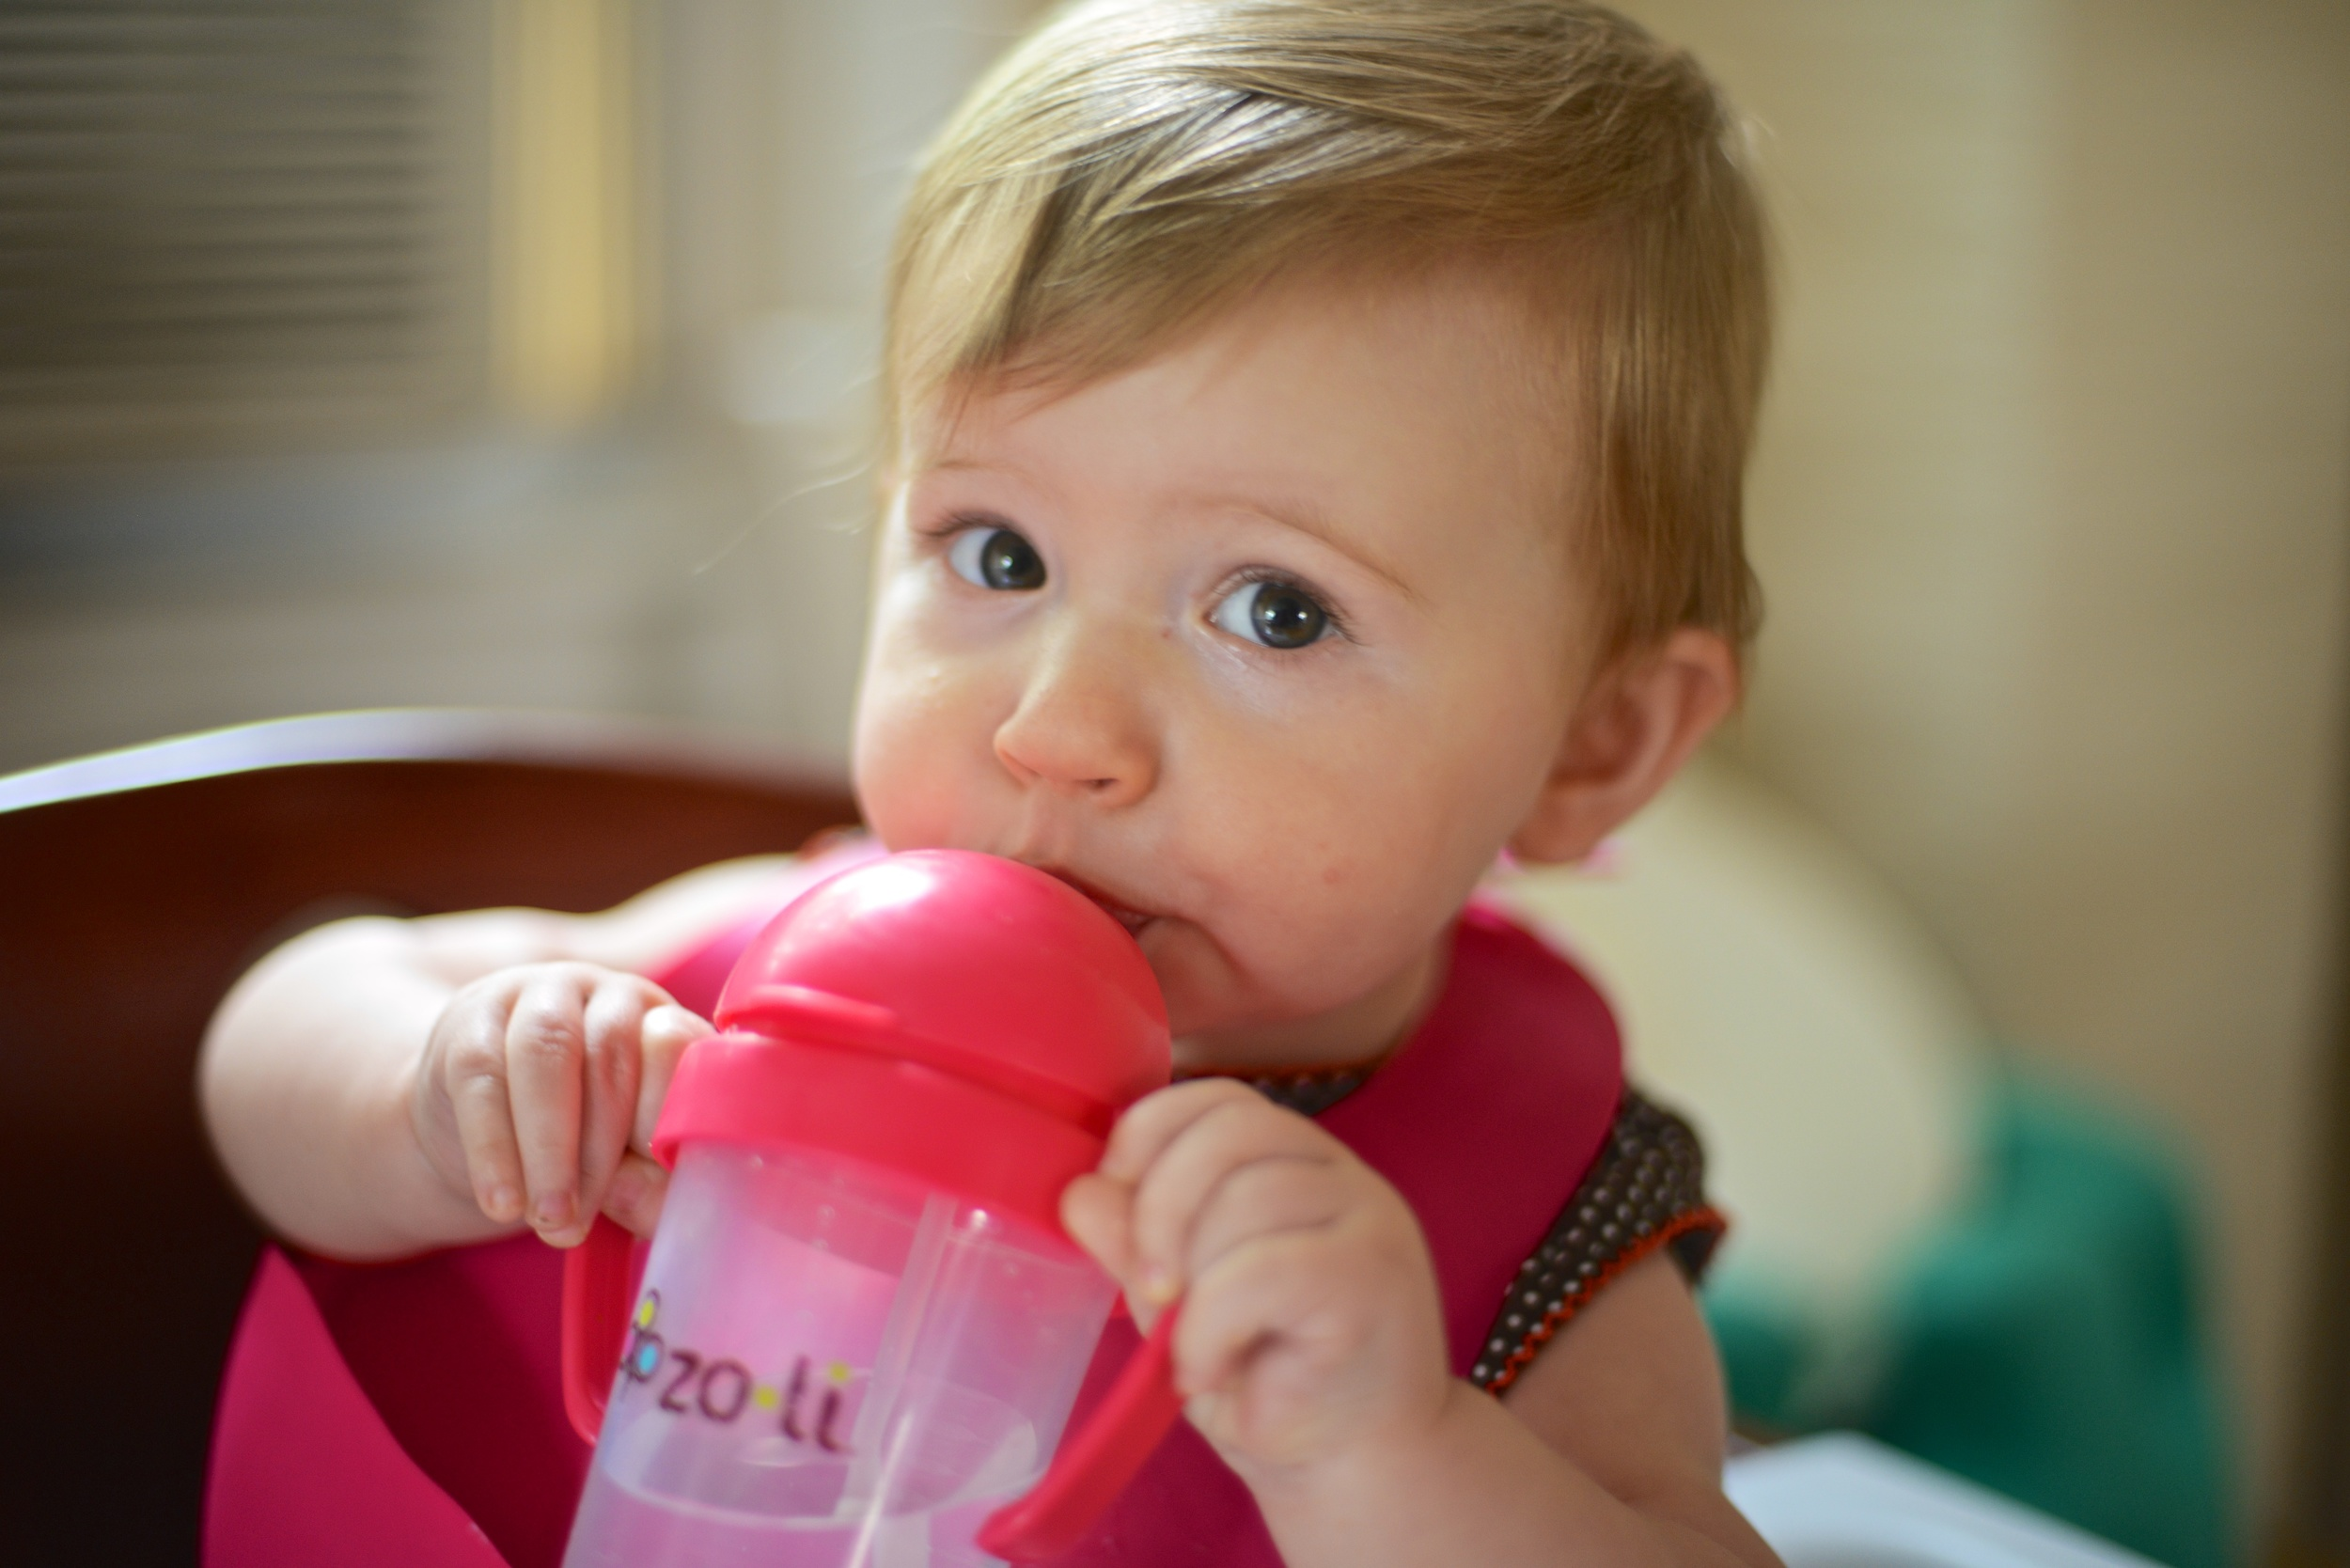 Drinking her water.